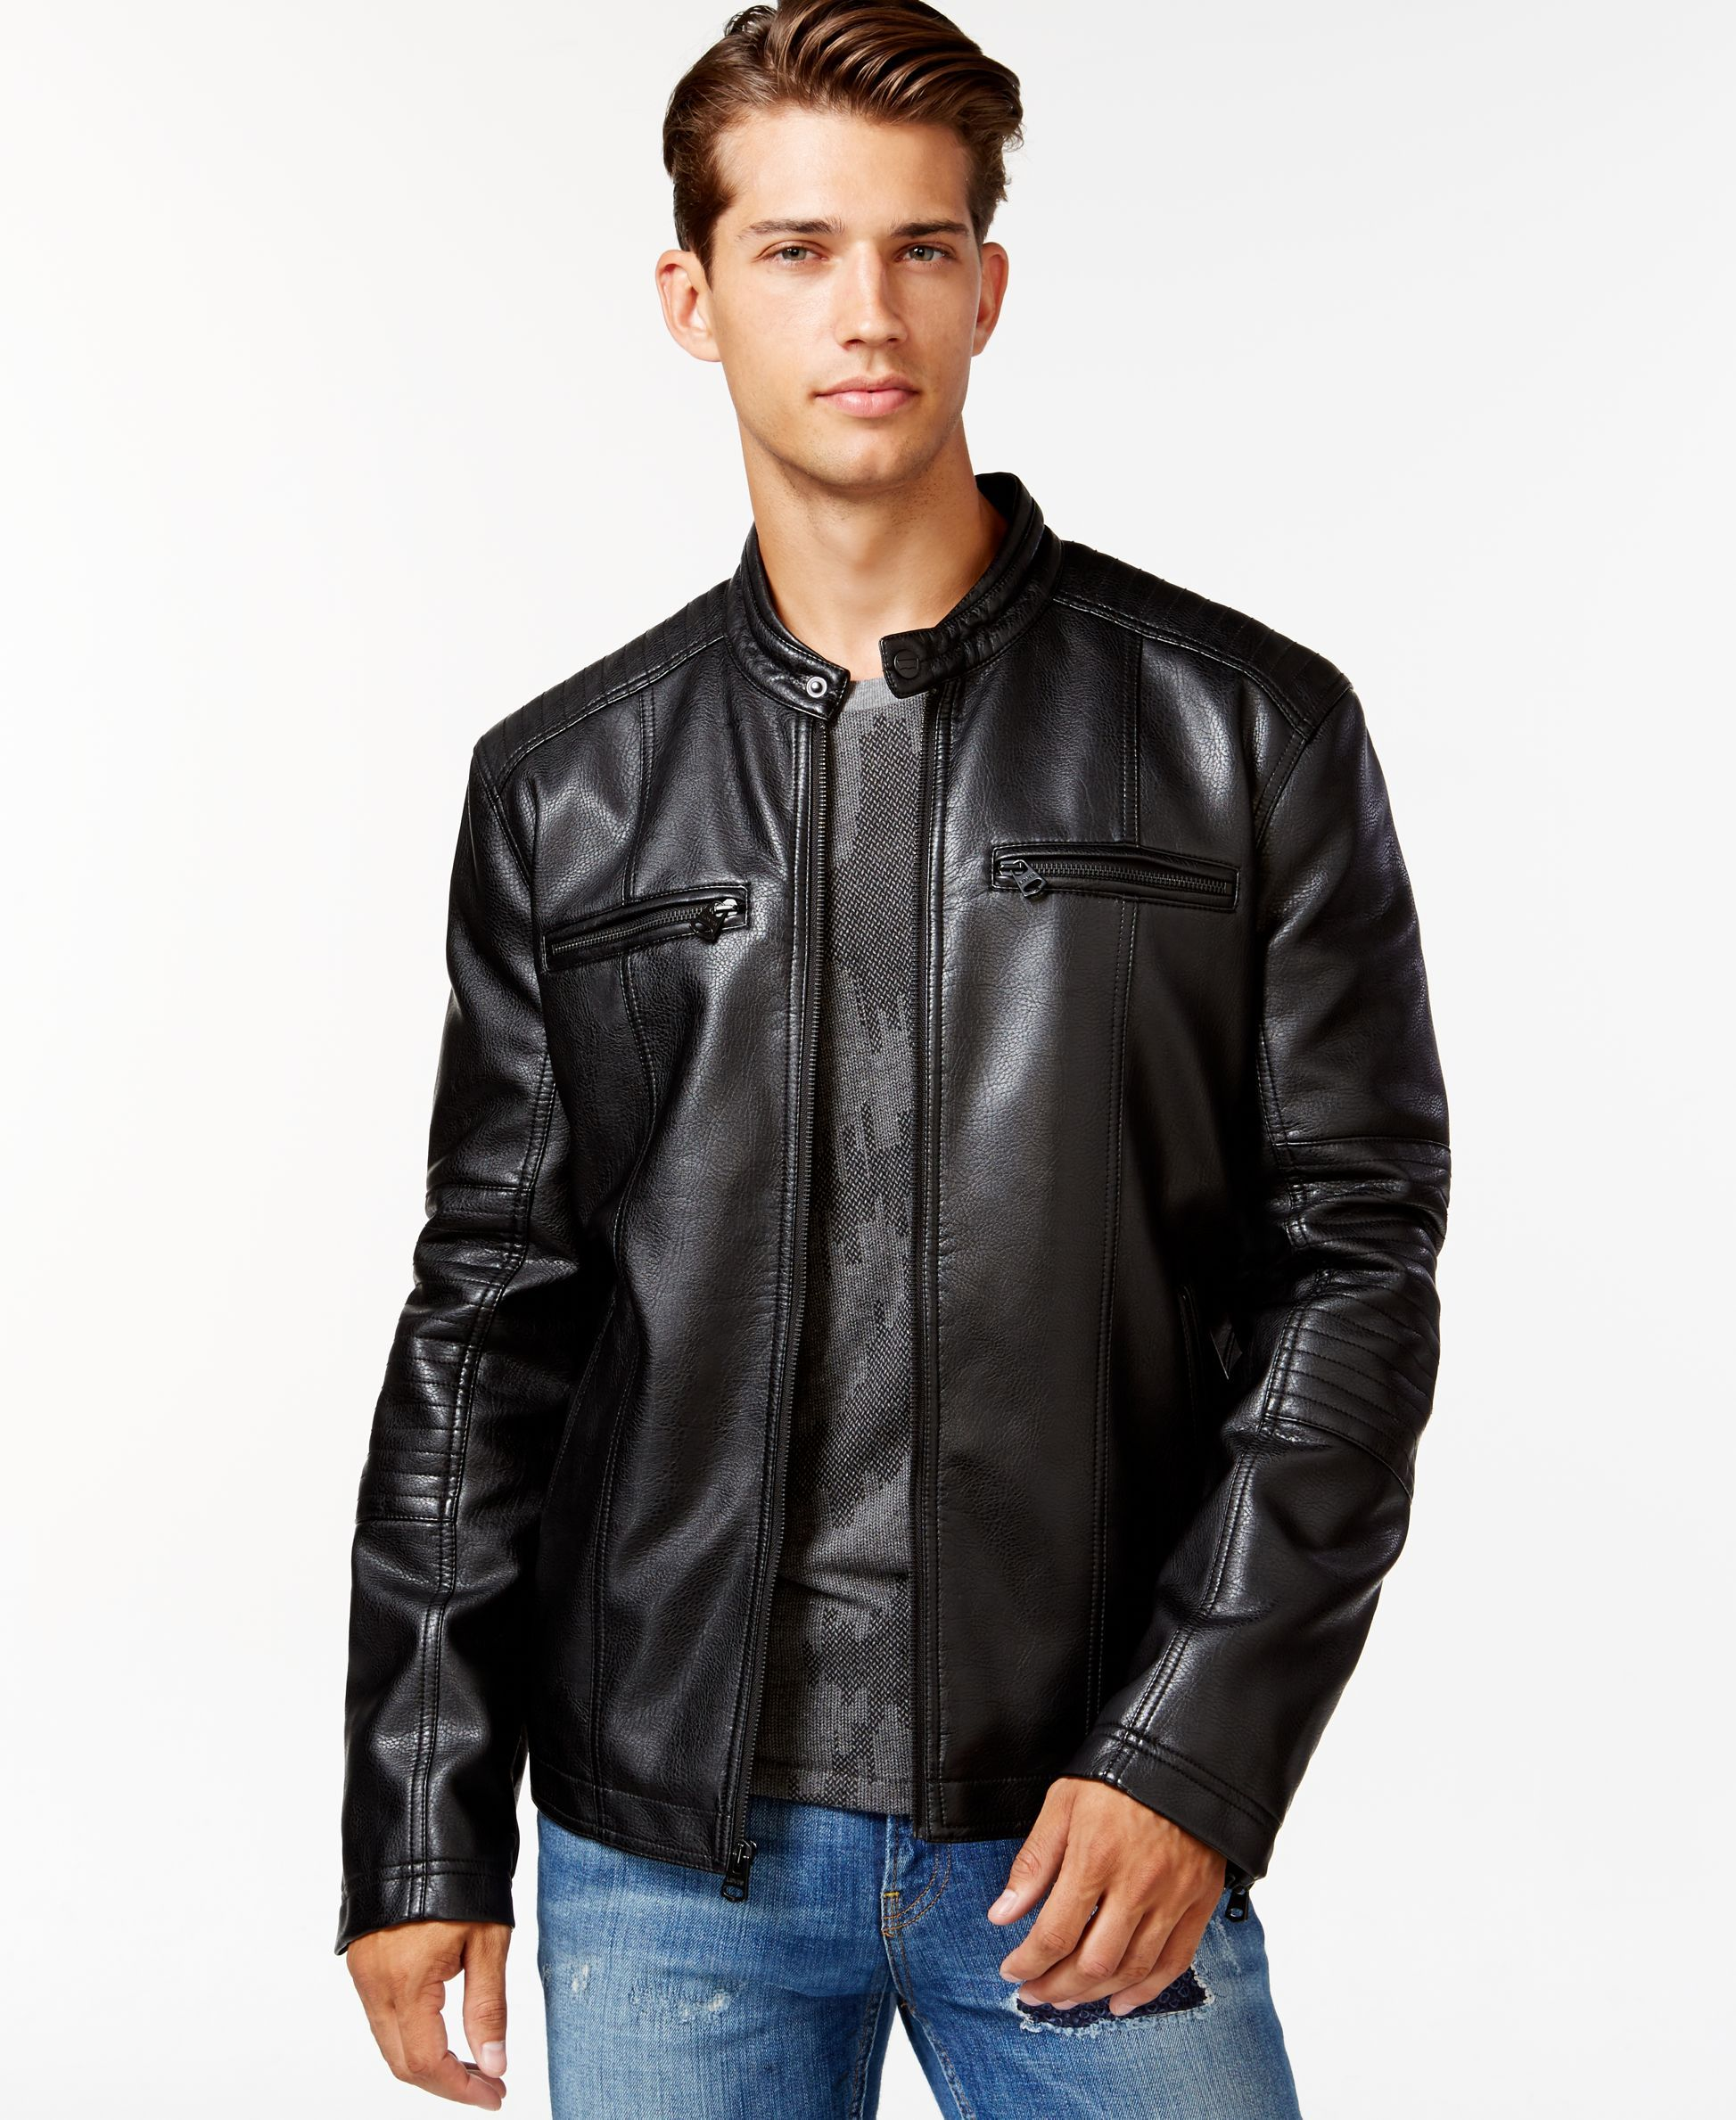 Levi S Racer Faux Leather Jacket Leather Jacket Mens Leather Clothing Leather Jacket Black [ 2378 x 1947 Pixel ]